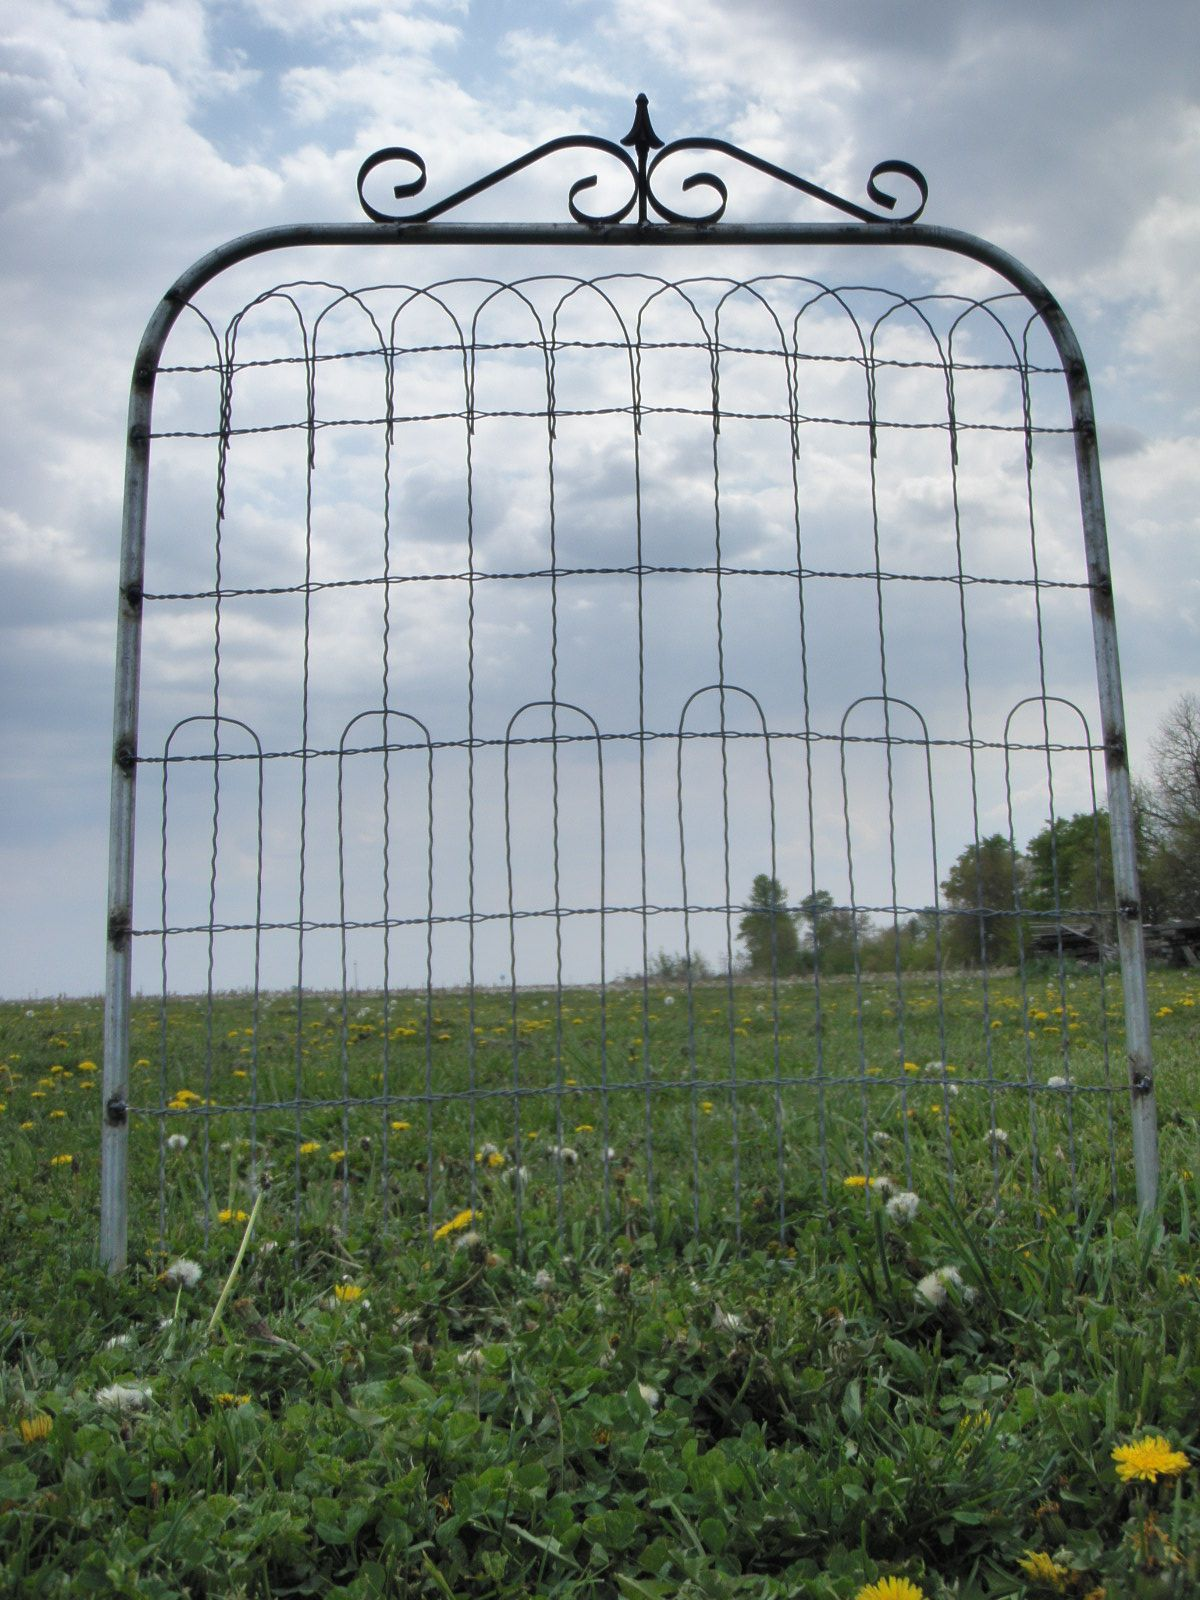 36 Tall X 36 Wide Wire Fence Garden Gate This Ornamental Wire Gate Is Made  With 36 Tall Fence.